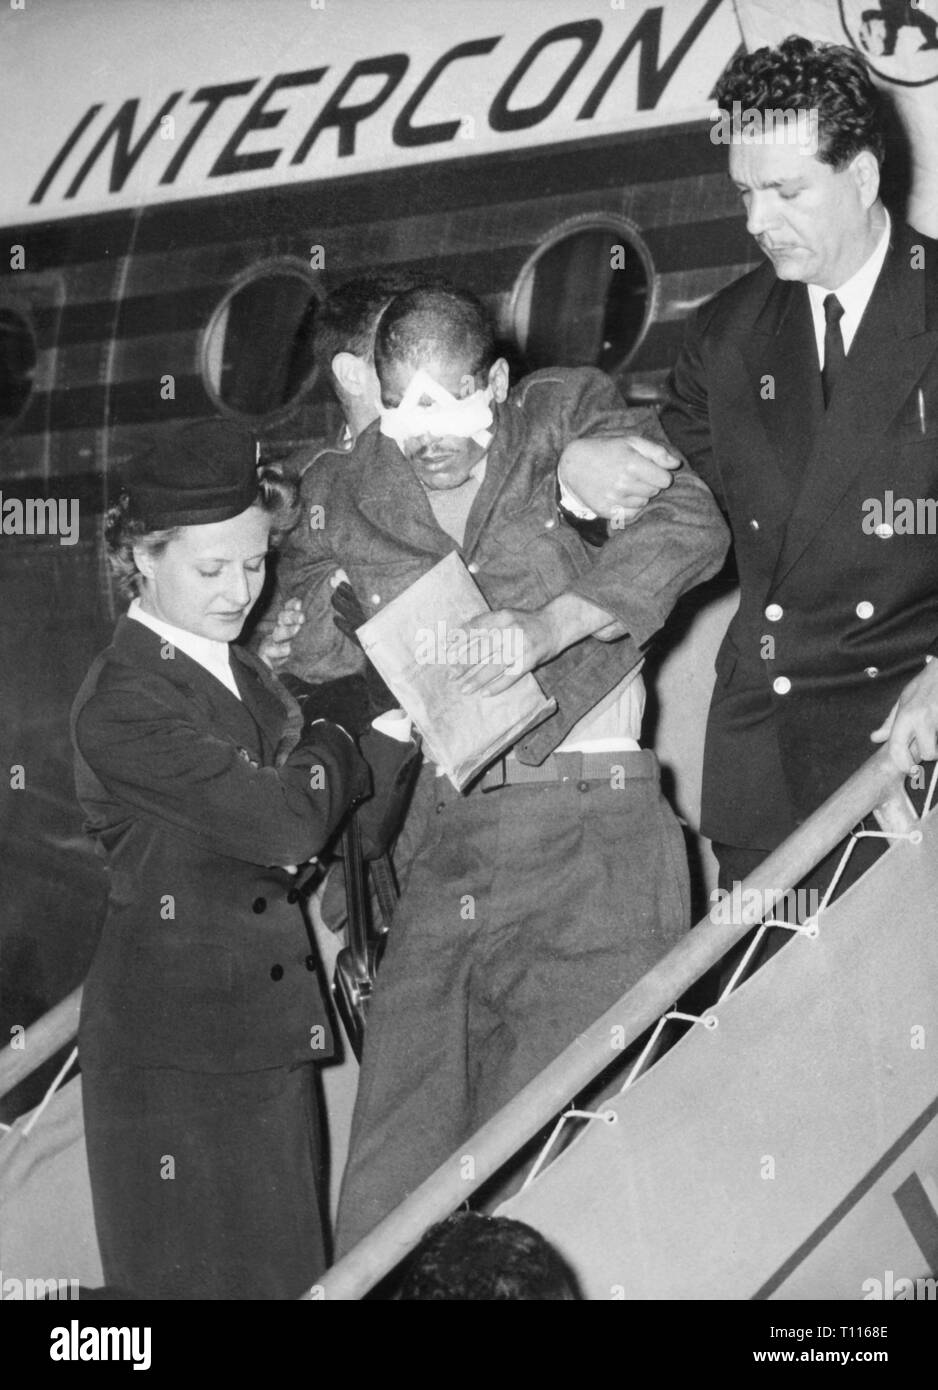 Indochina War 1946 - 1954, Battle of Dien Bien Phu, 13.3. - 7.5.1954, arrival seriously wounded soldiers at airport Orly, Paris, 5.5.1954, evacuation, evacuations, casualty, casualties, hurt, stewardess, air hostess, stewardesses, air hostesses, flight attendant, aircraft, gangway, steps, aid, military, wars, Indochina, France, colonial war, people, 20th century, 1950s, battle, battles, soldiers, soldier, airport, airports, historic, historical, paratroop, paratroops, paratrooper, Para, paratroopers, Paras, airborne forces, Additional-Rights-Clearance-Info-Not-Available - Stock Image